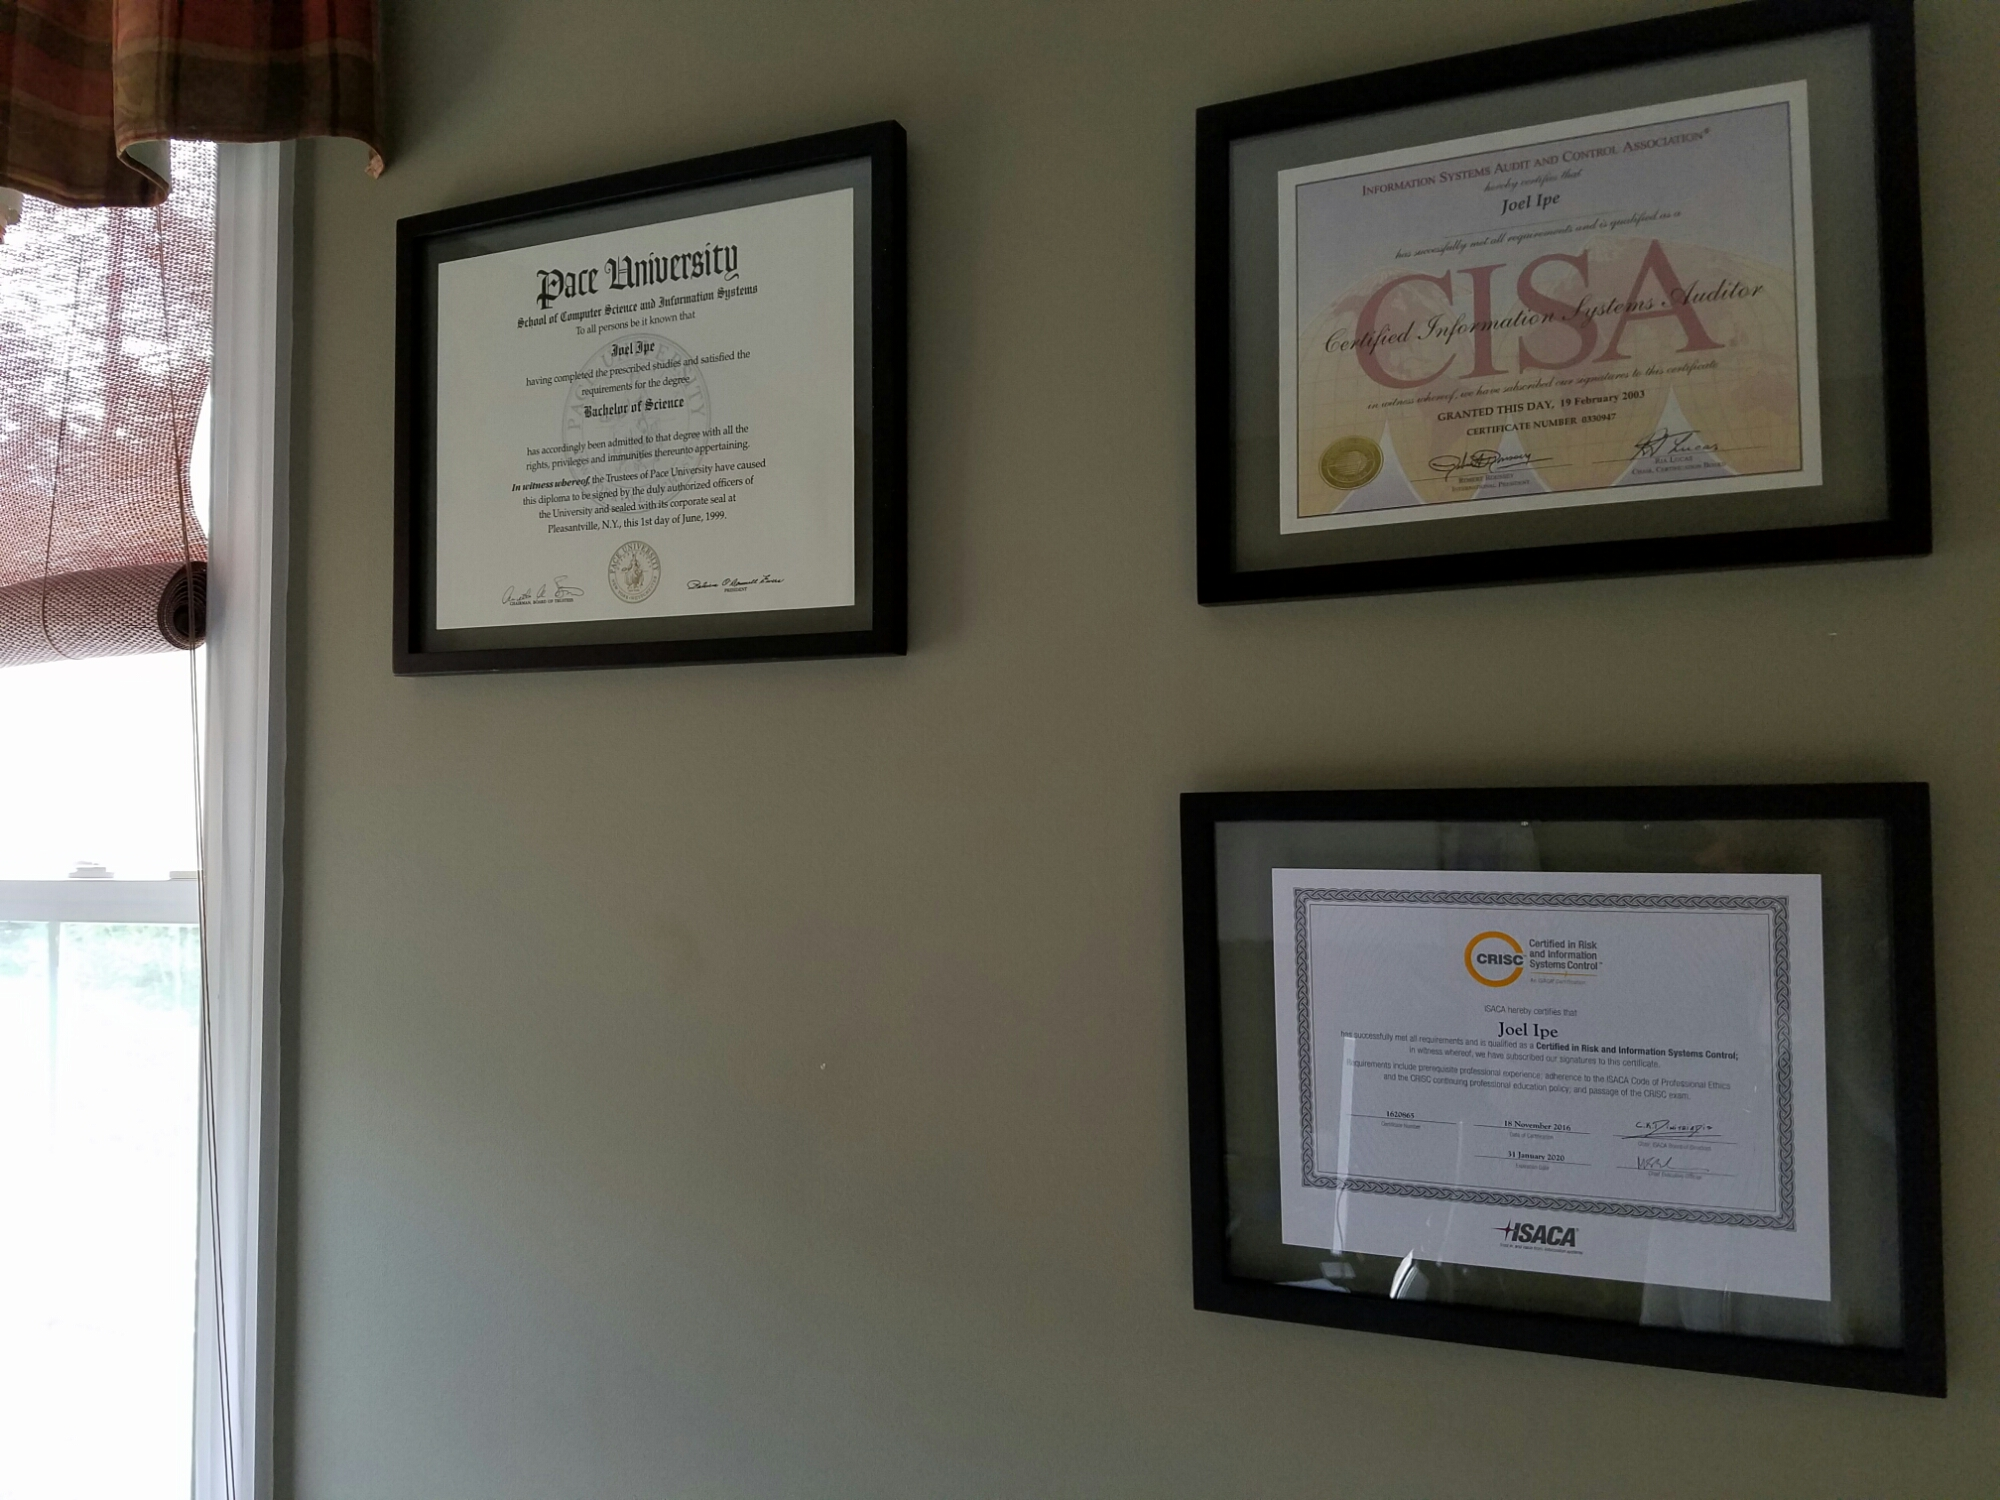 crisc certificate arrived wait mail official worth